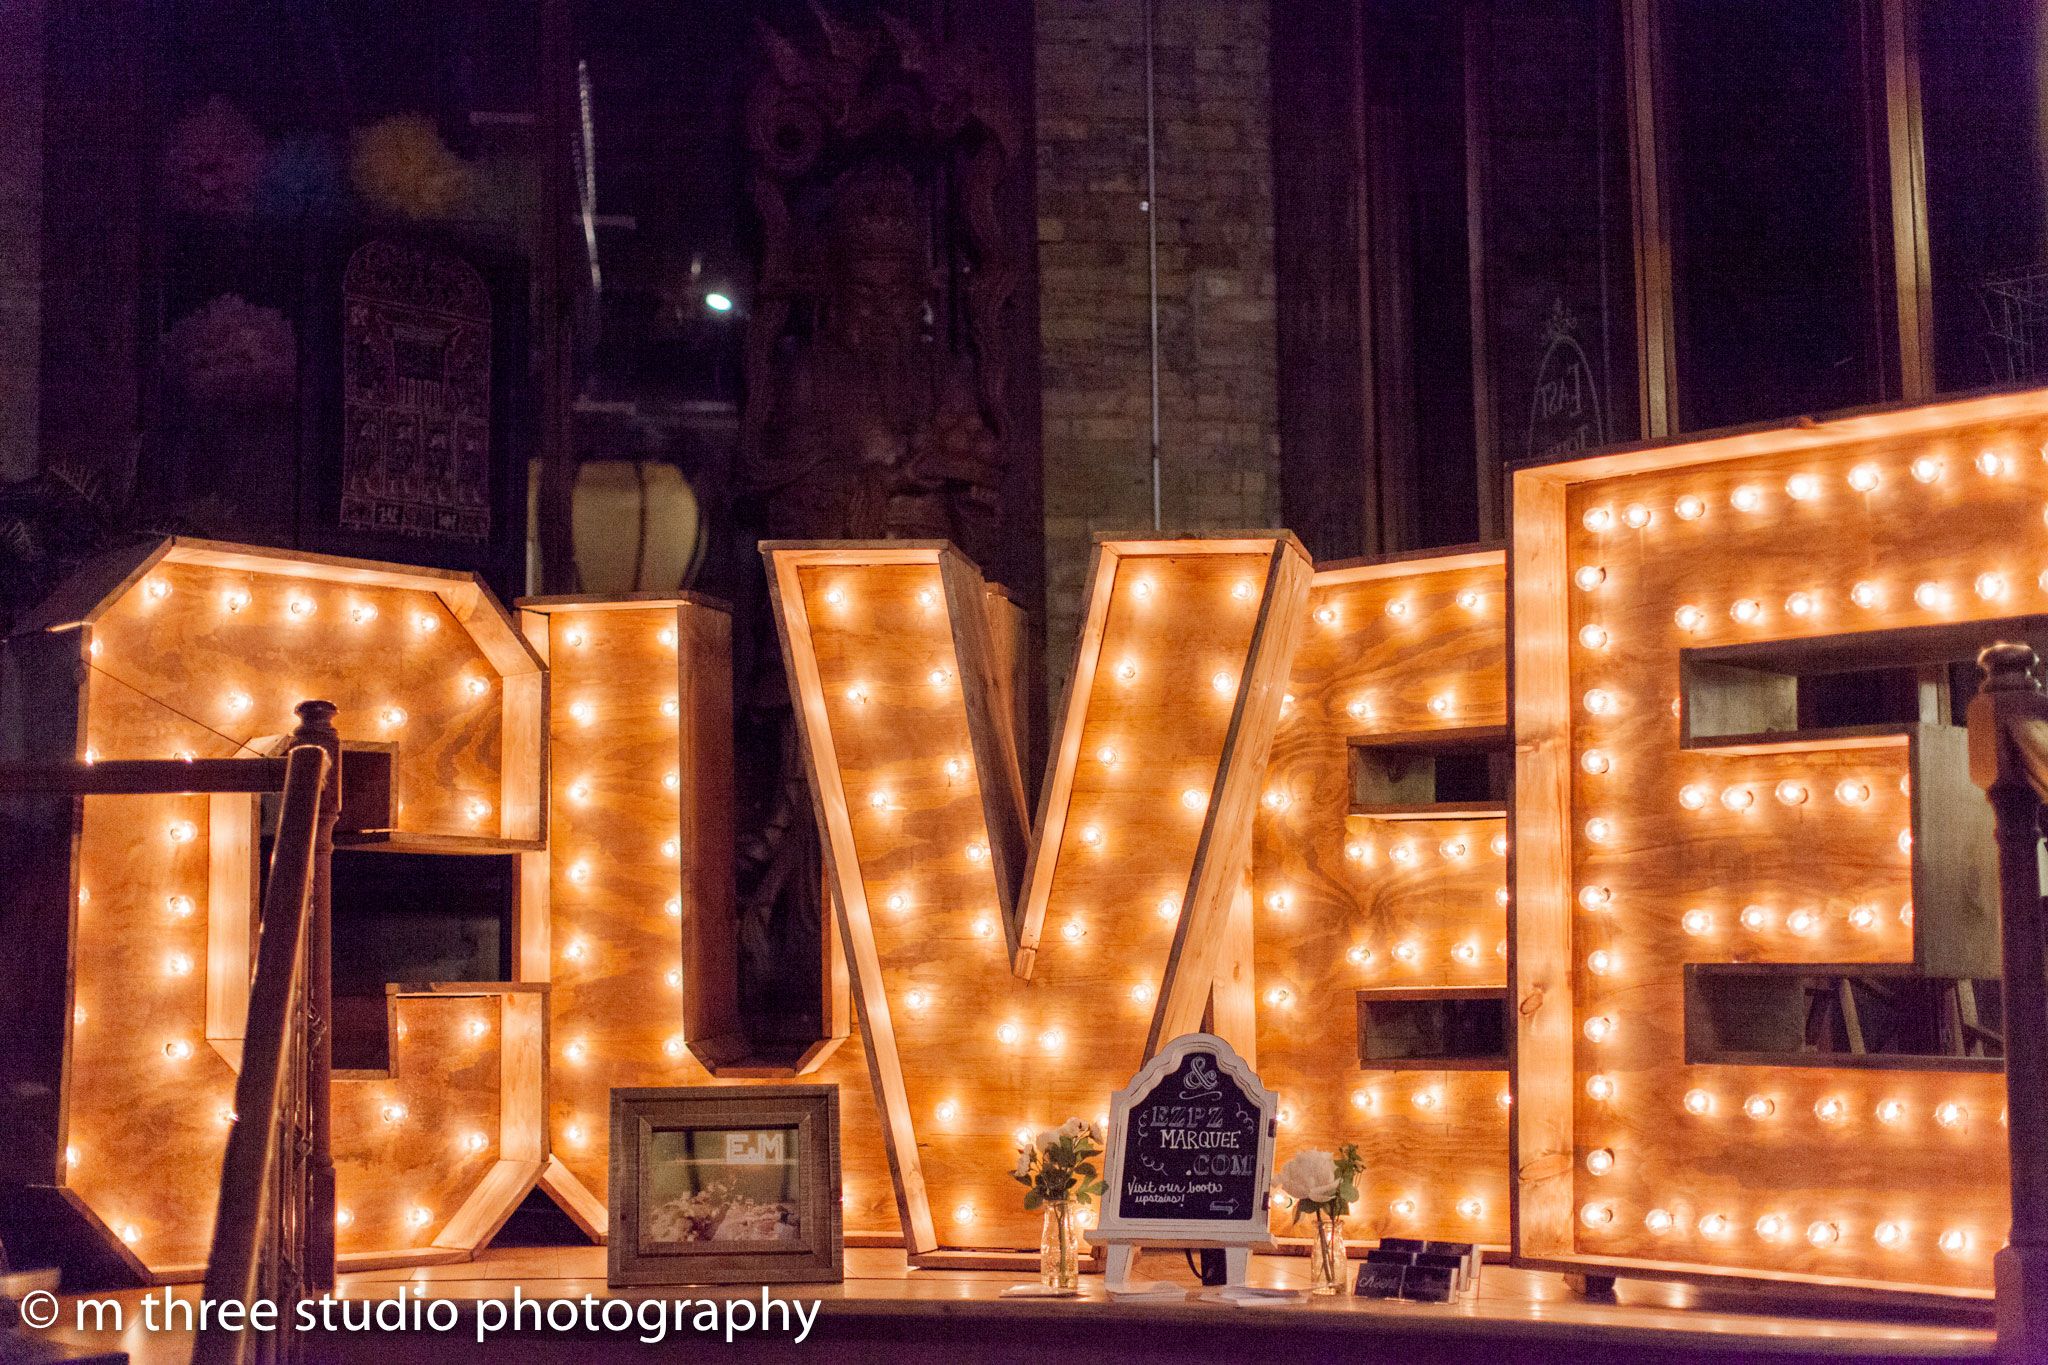 How to Choose & Book the Best Wedding Venue